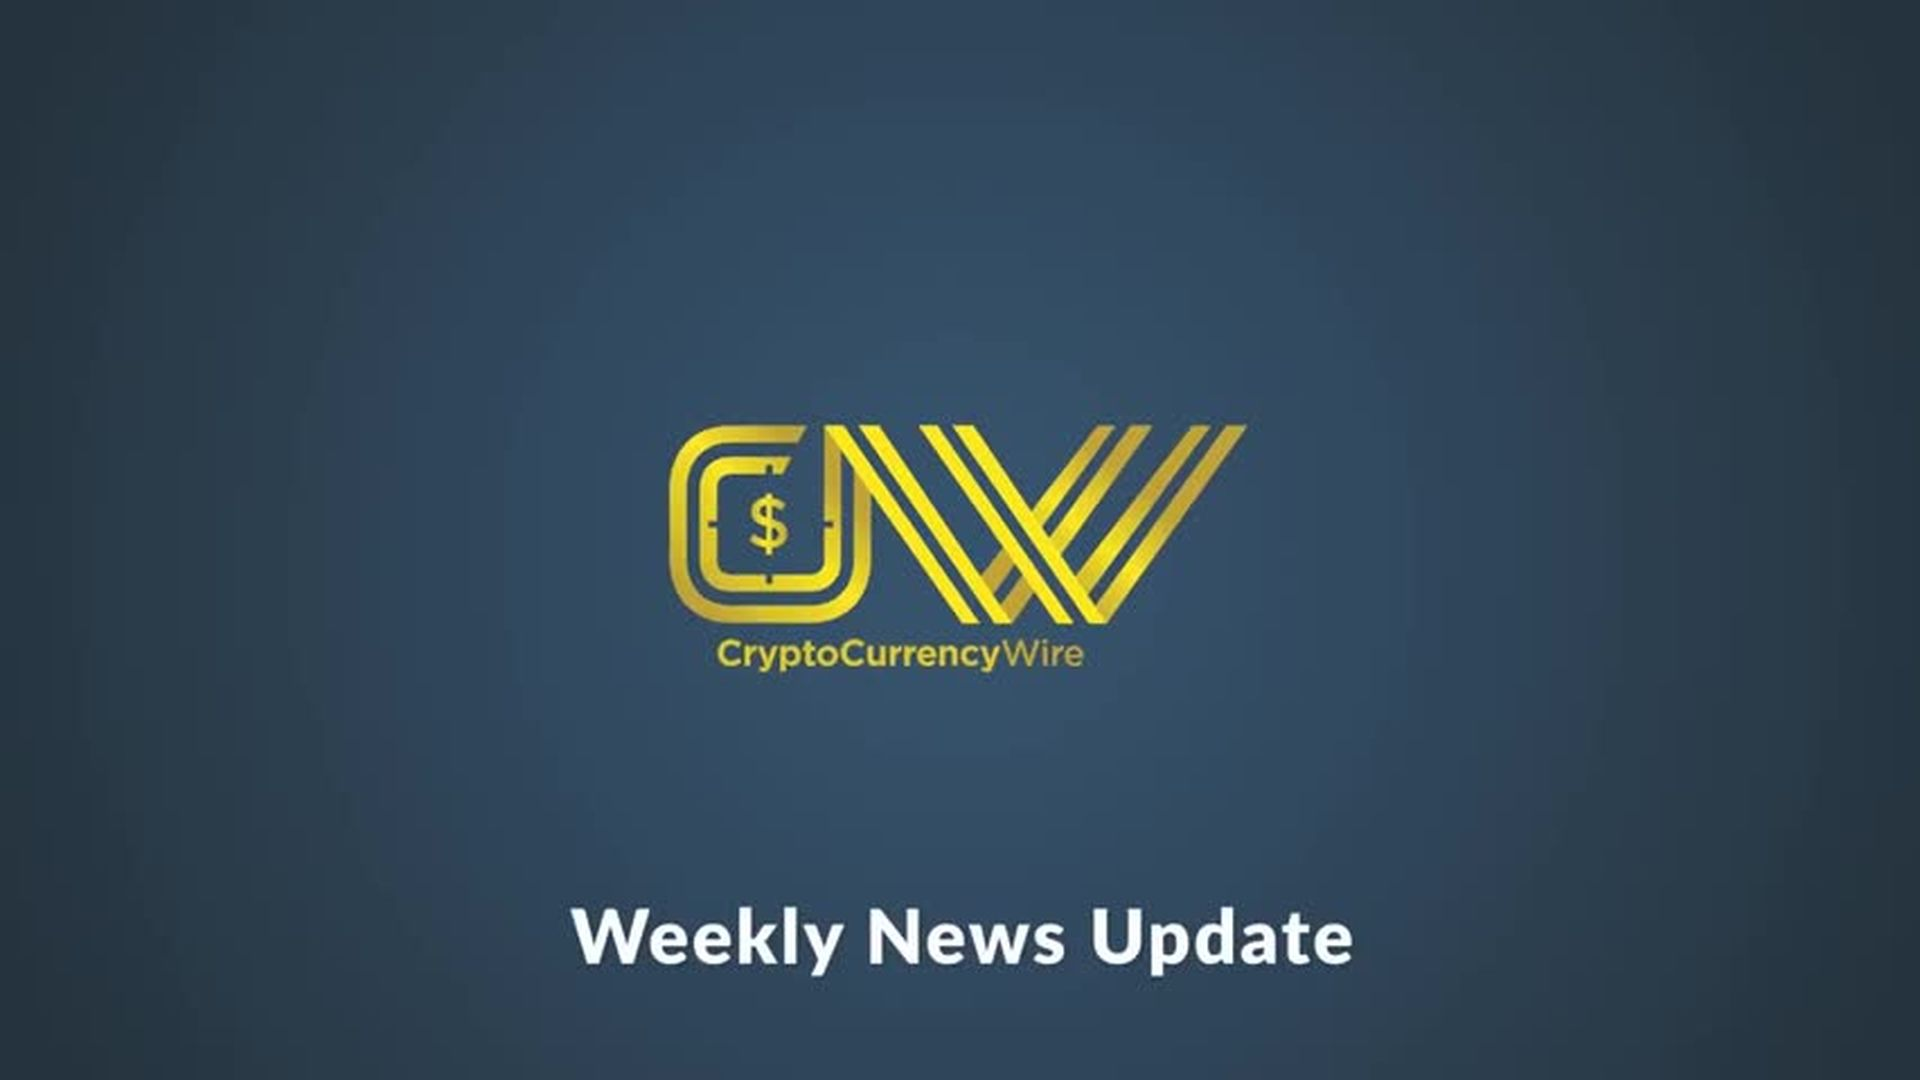 Cryptos Recovering: BTC Bounces Back Up   CryptoCurrencyWire on The Wild West Crypto Show   Episode 103